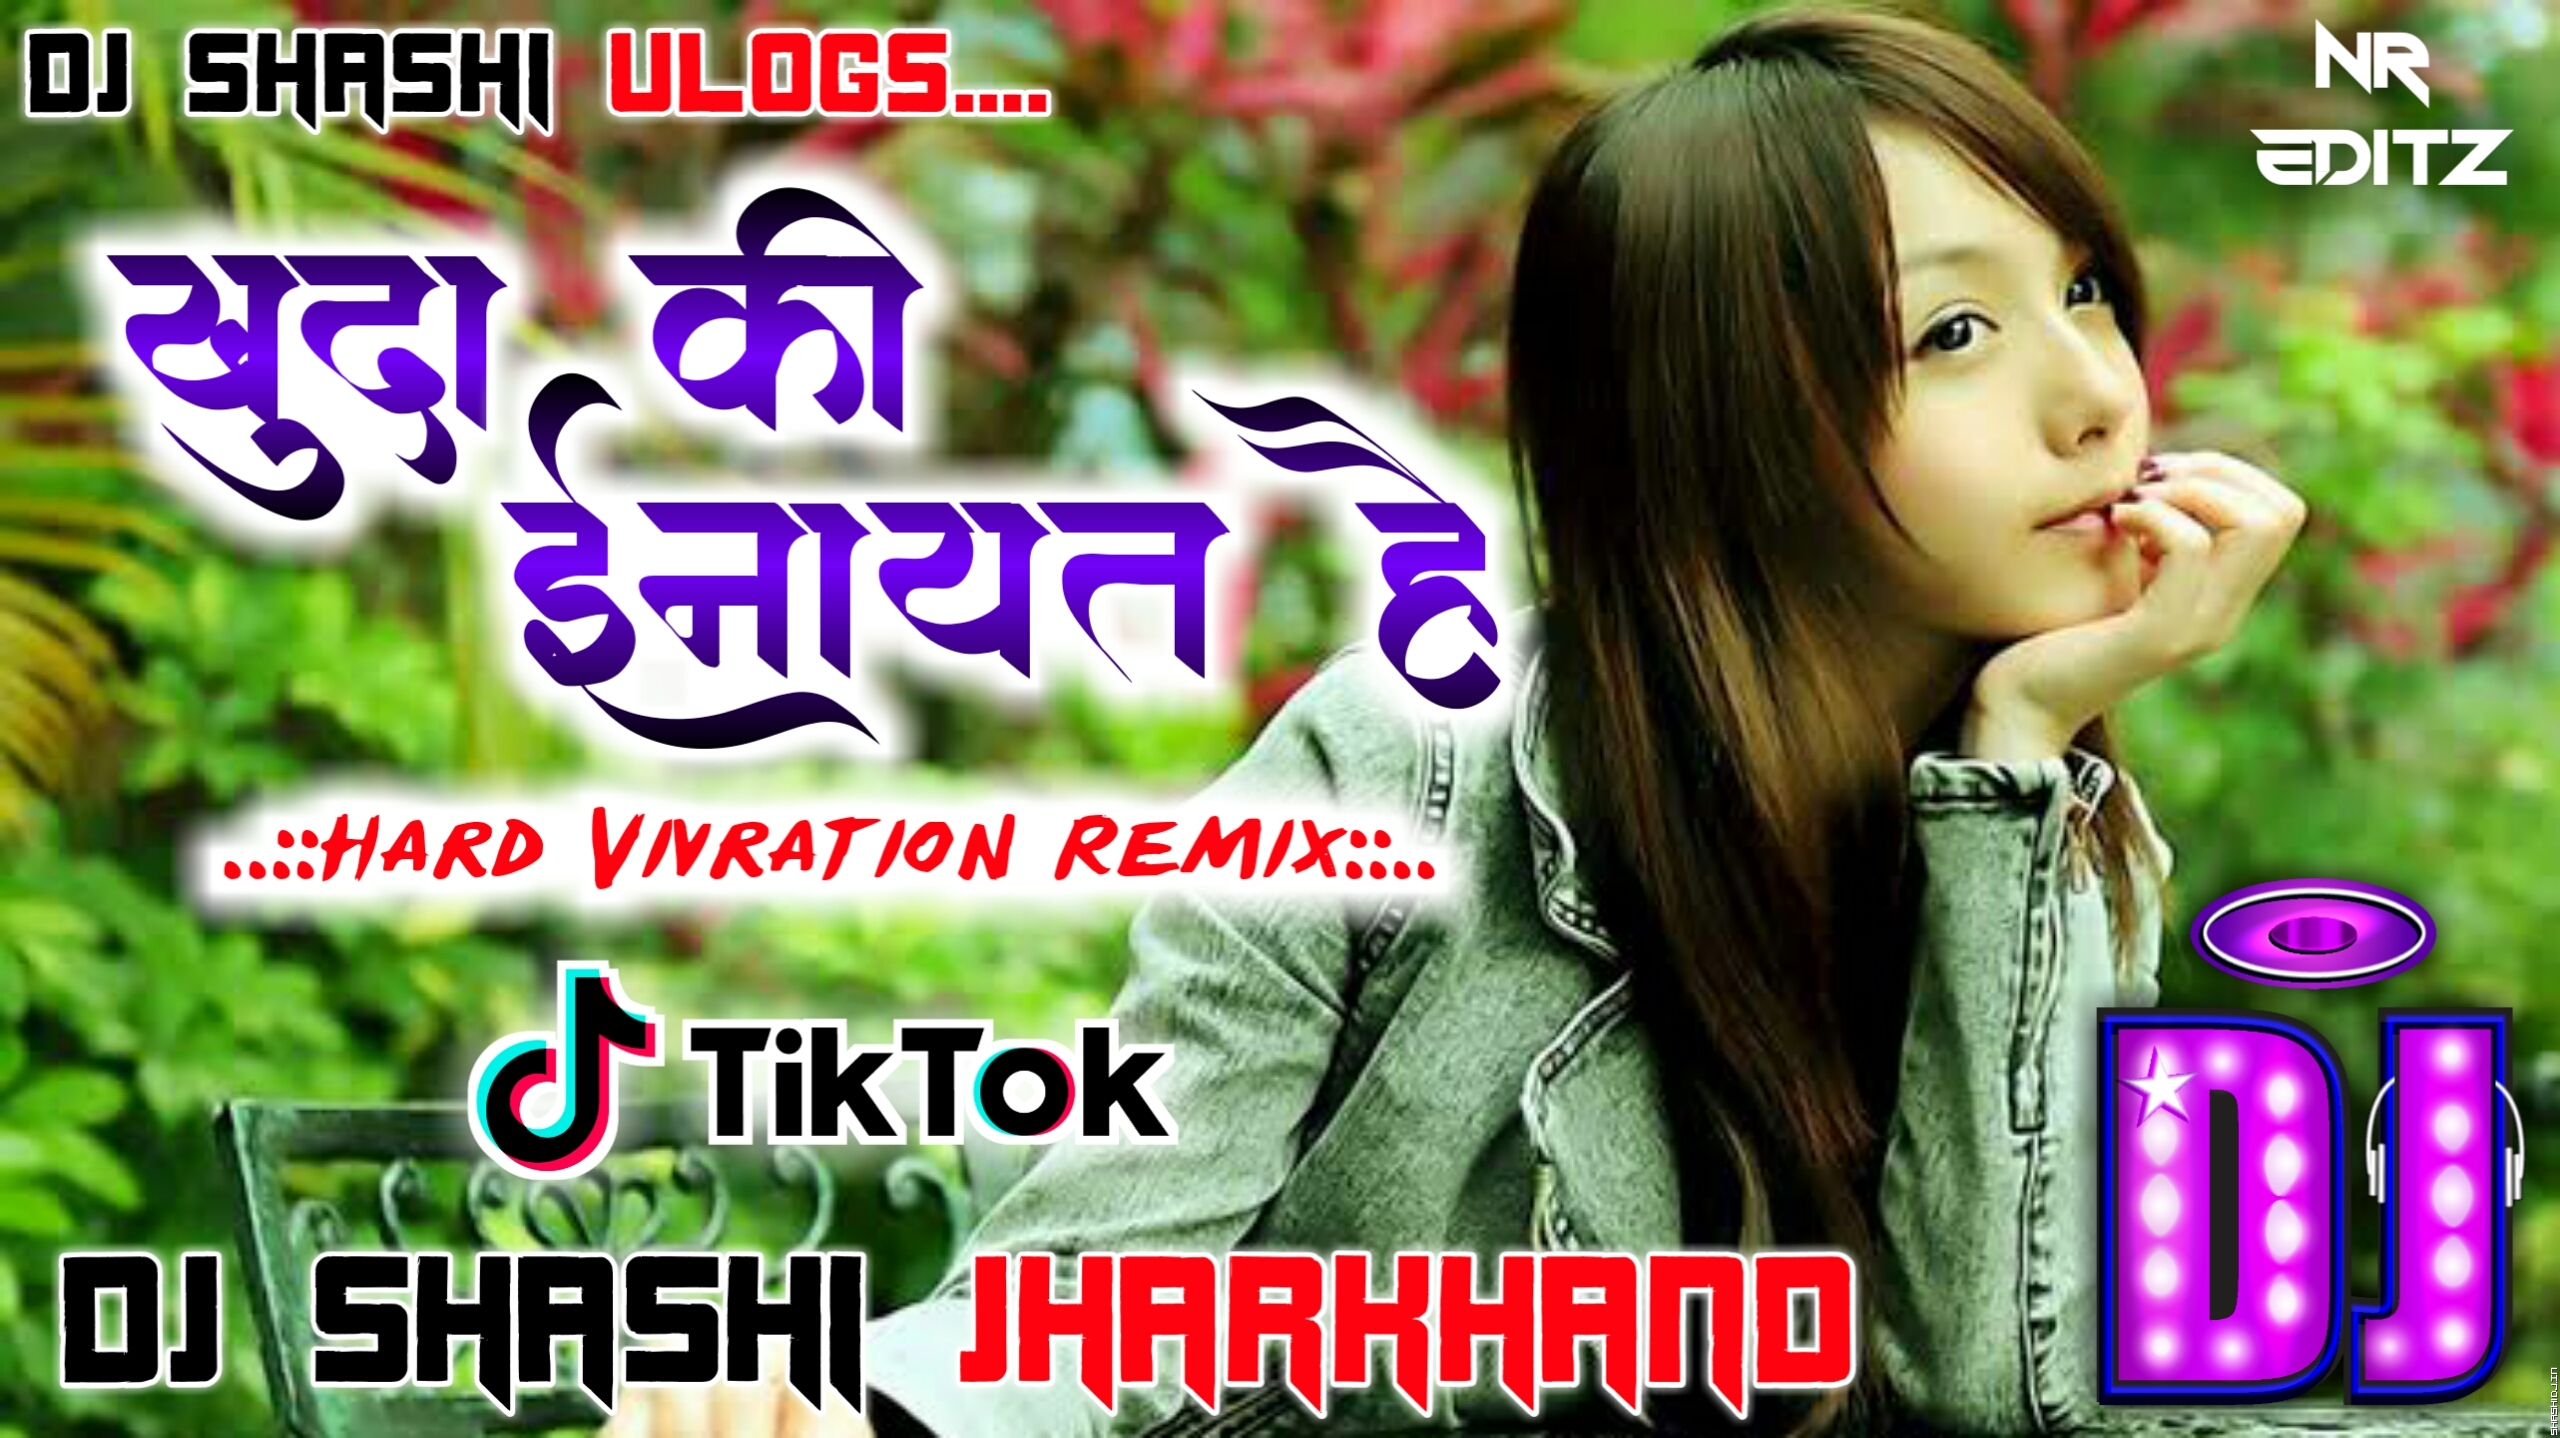 KHUDA KI INAYAT HAI--HI POWER VIBRATION MIX BY DJ SHASHI.mp3